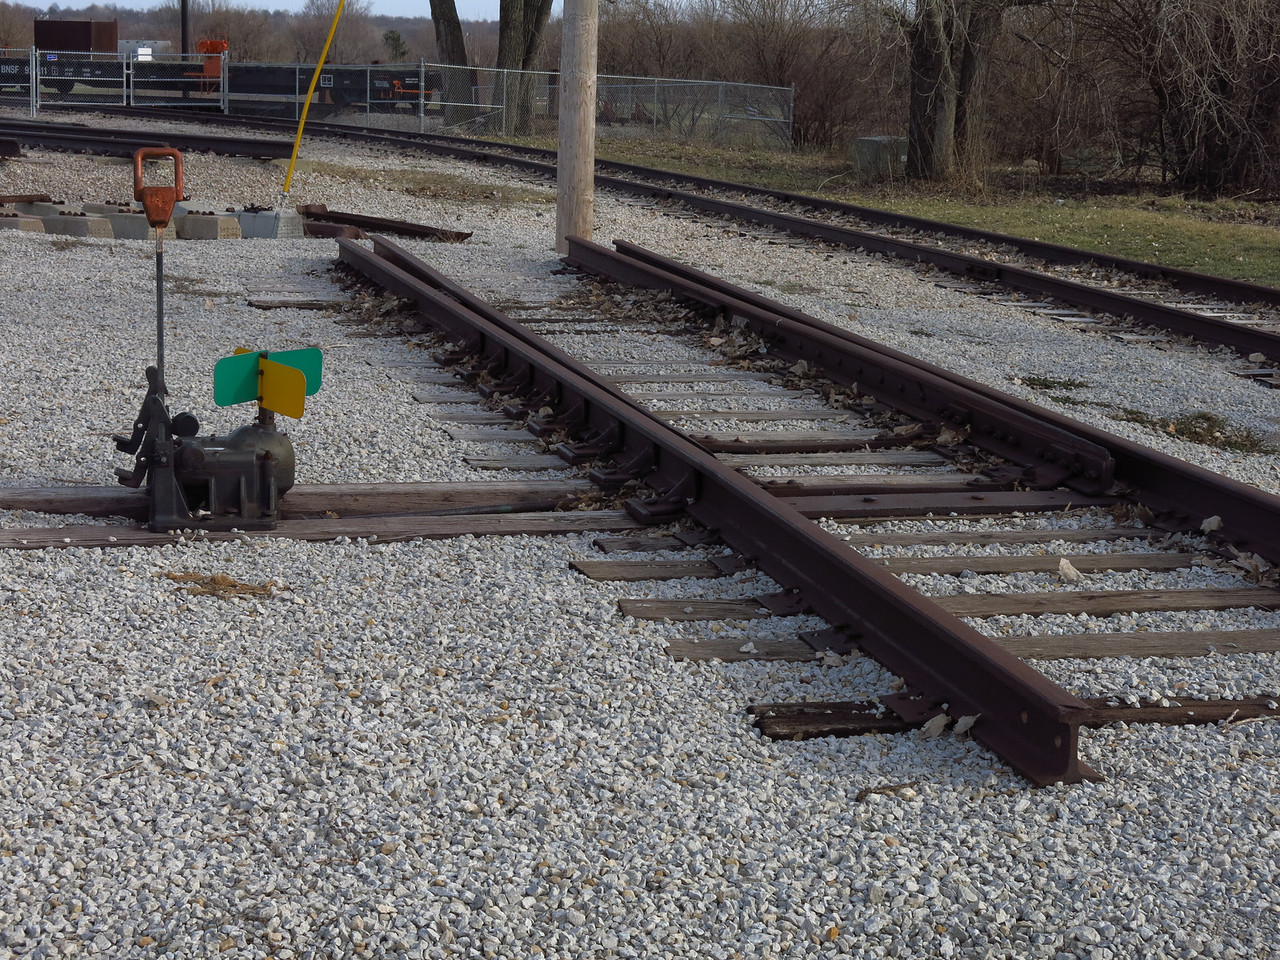 The laboratory for the training program at JCCC.  This image shows an example of one type of switch used on the the railroad.